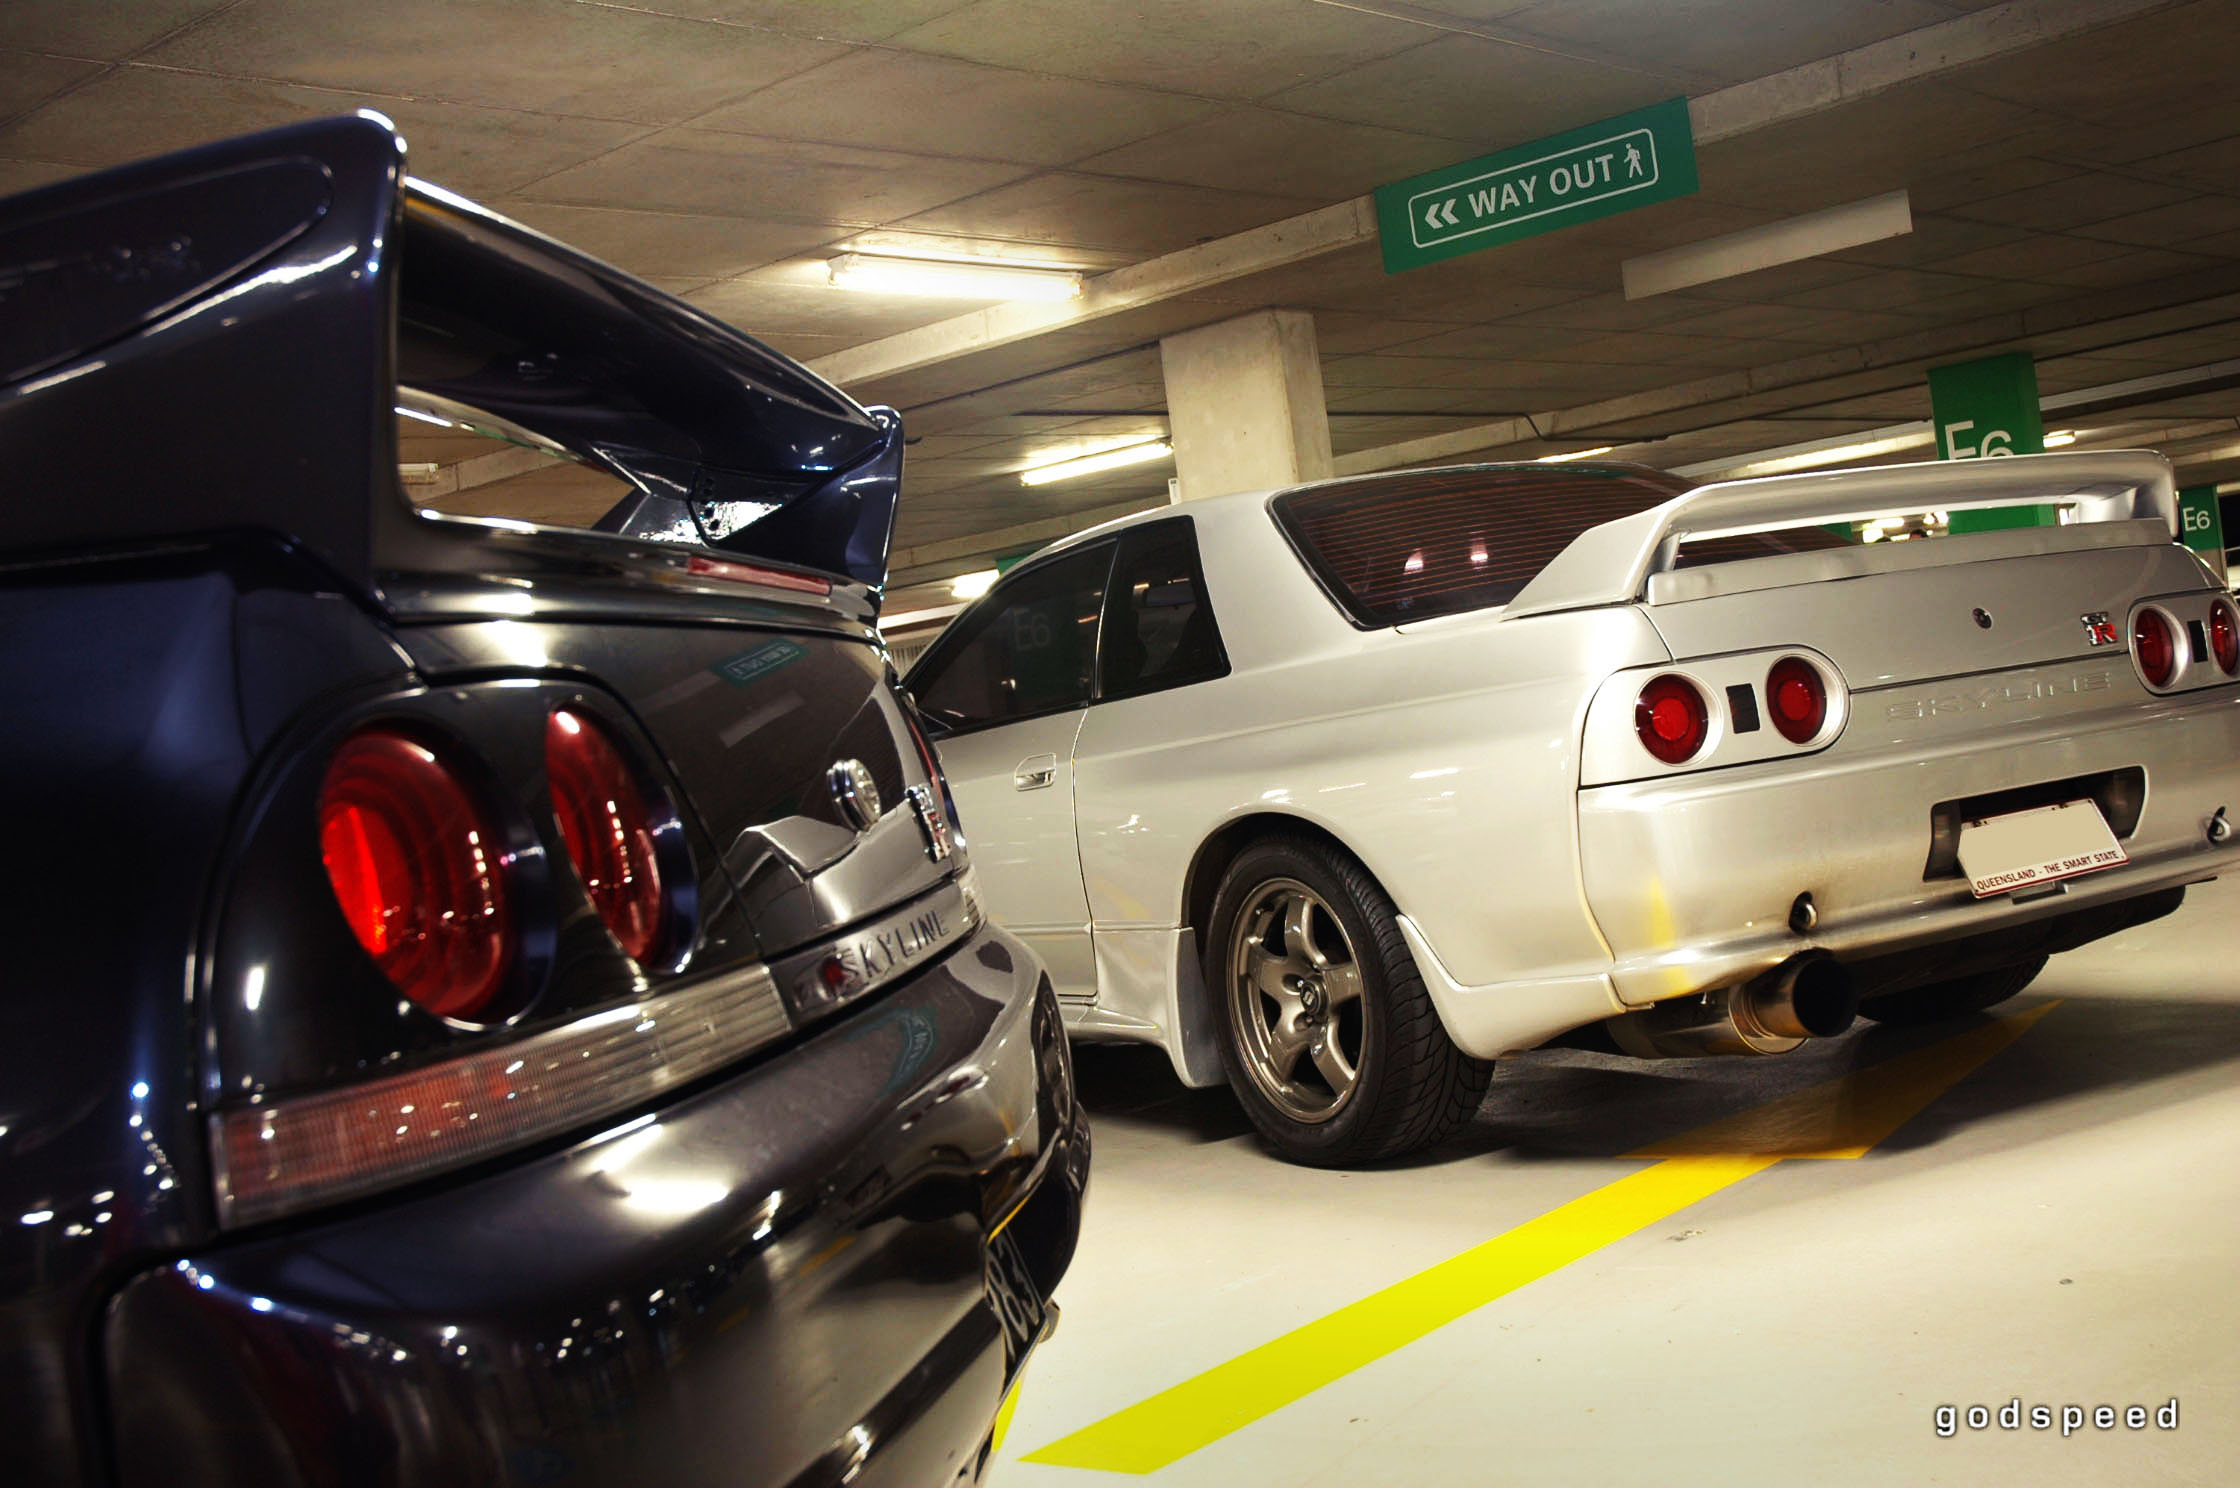 Nissan Skyline R32 and R33 GT-R (Re-Edit) | Flickr - Photo Sharing!